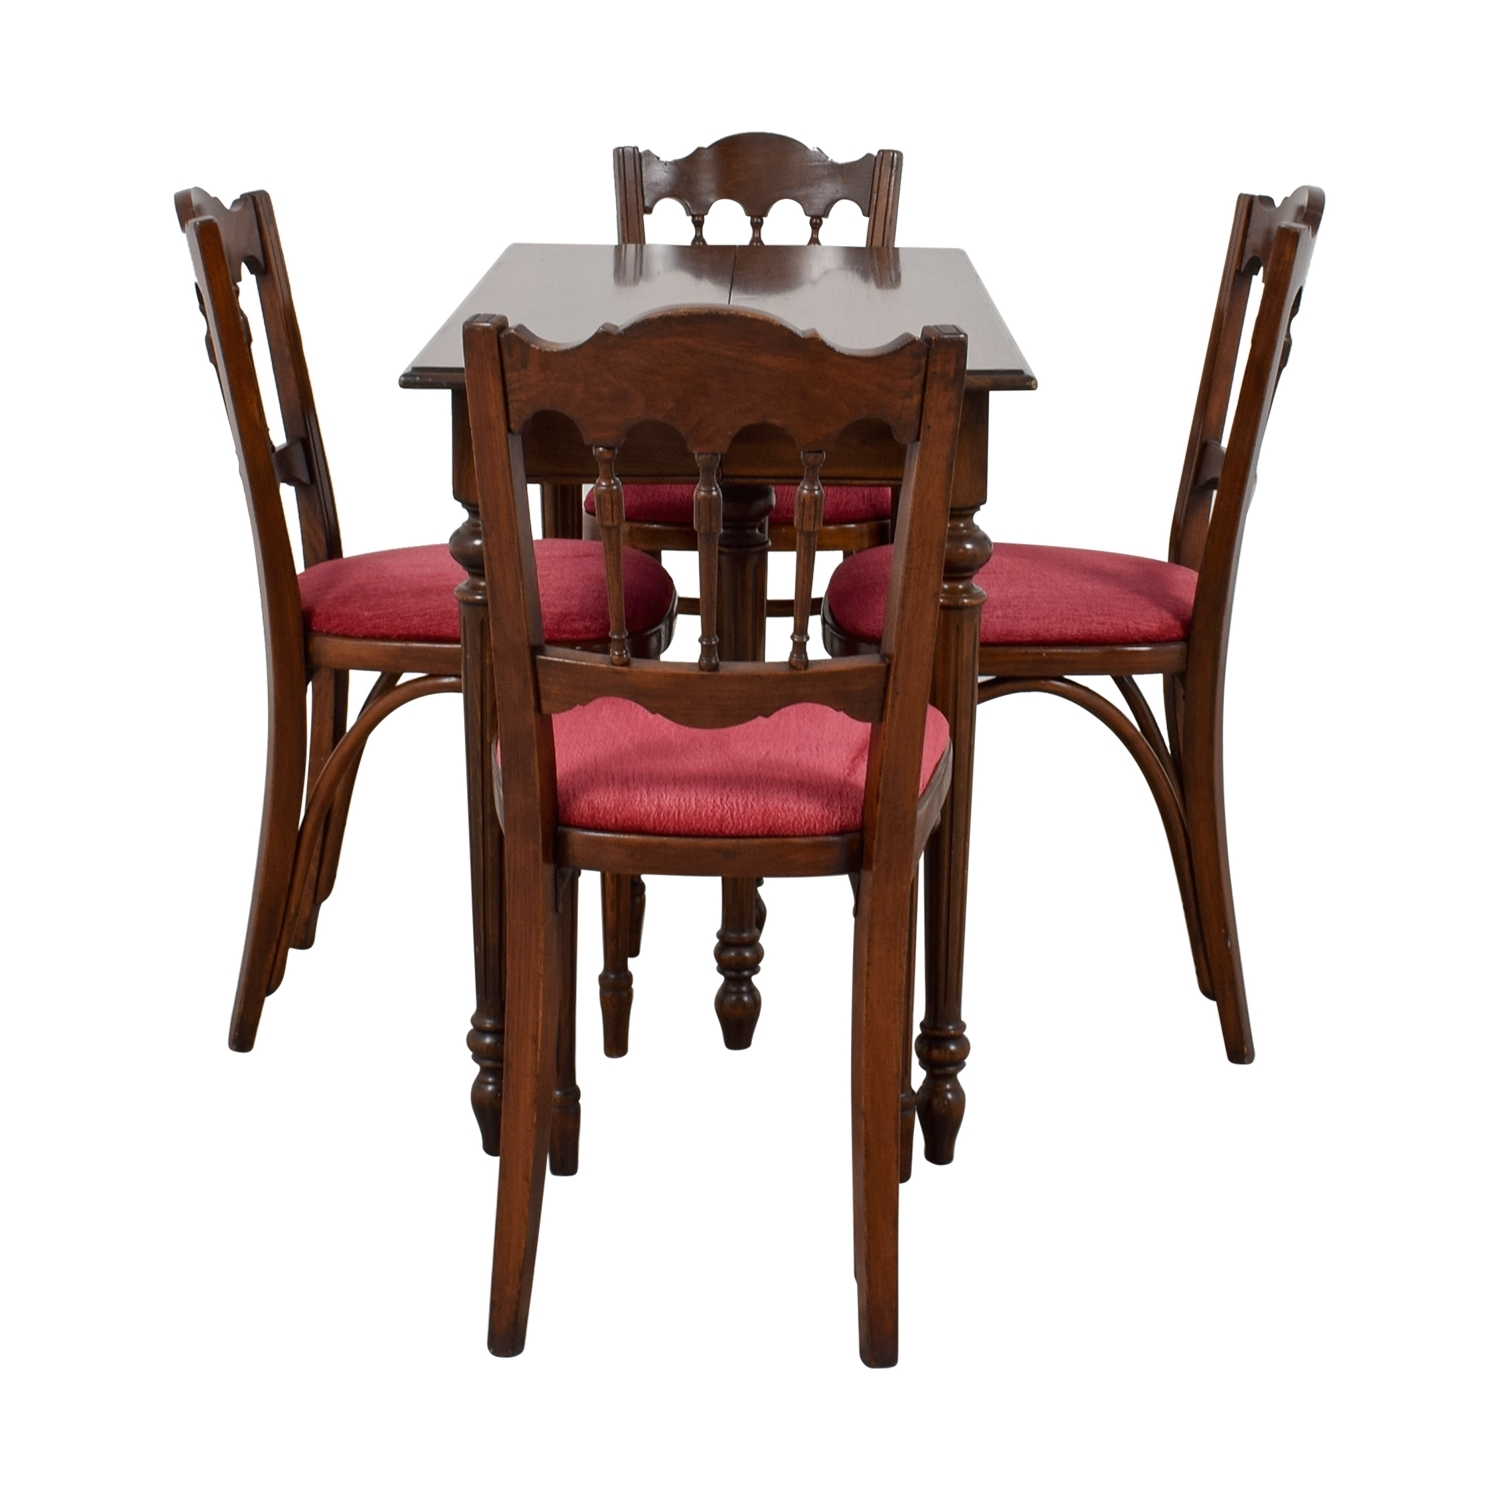 [%67% Off – Vinatage Mahogany Dining Table Set / Tables In Latest Mahogany Dining Table Sets|Mahogany Dining Table Sets For Most Popular 67% Off – Vinatage Mahogany Dining Table Set / Tables|Well Liked Mahogany Dining Table Sets Regarding 67% Off – Vinatage Mahogany Dining Table Set / Tables|Latest 67% Off – Vinatage Mahogany Dining Table Set / Tables In Mahogany Dining Table Sets%] (View 1 of 25)